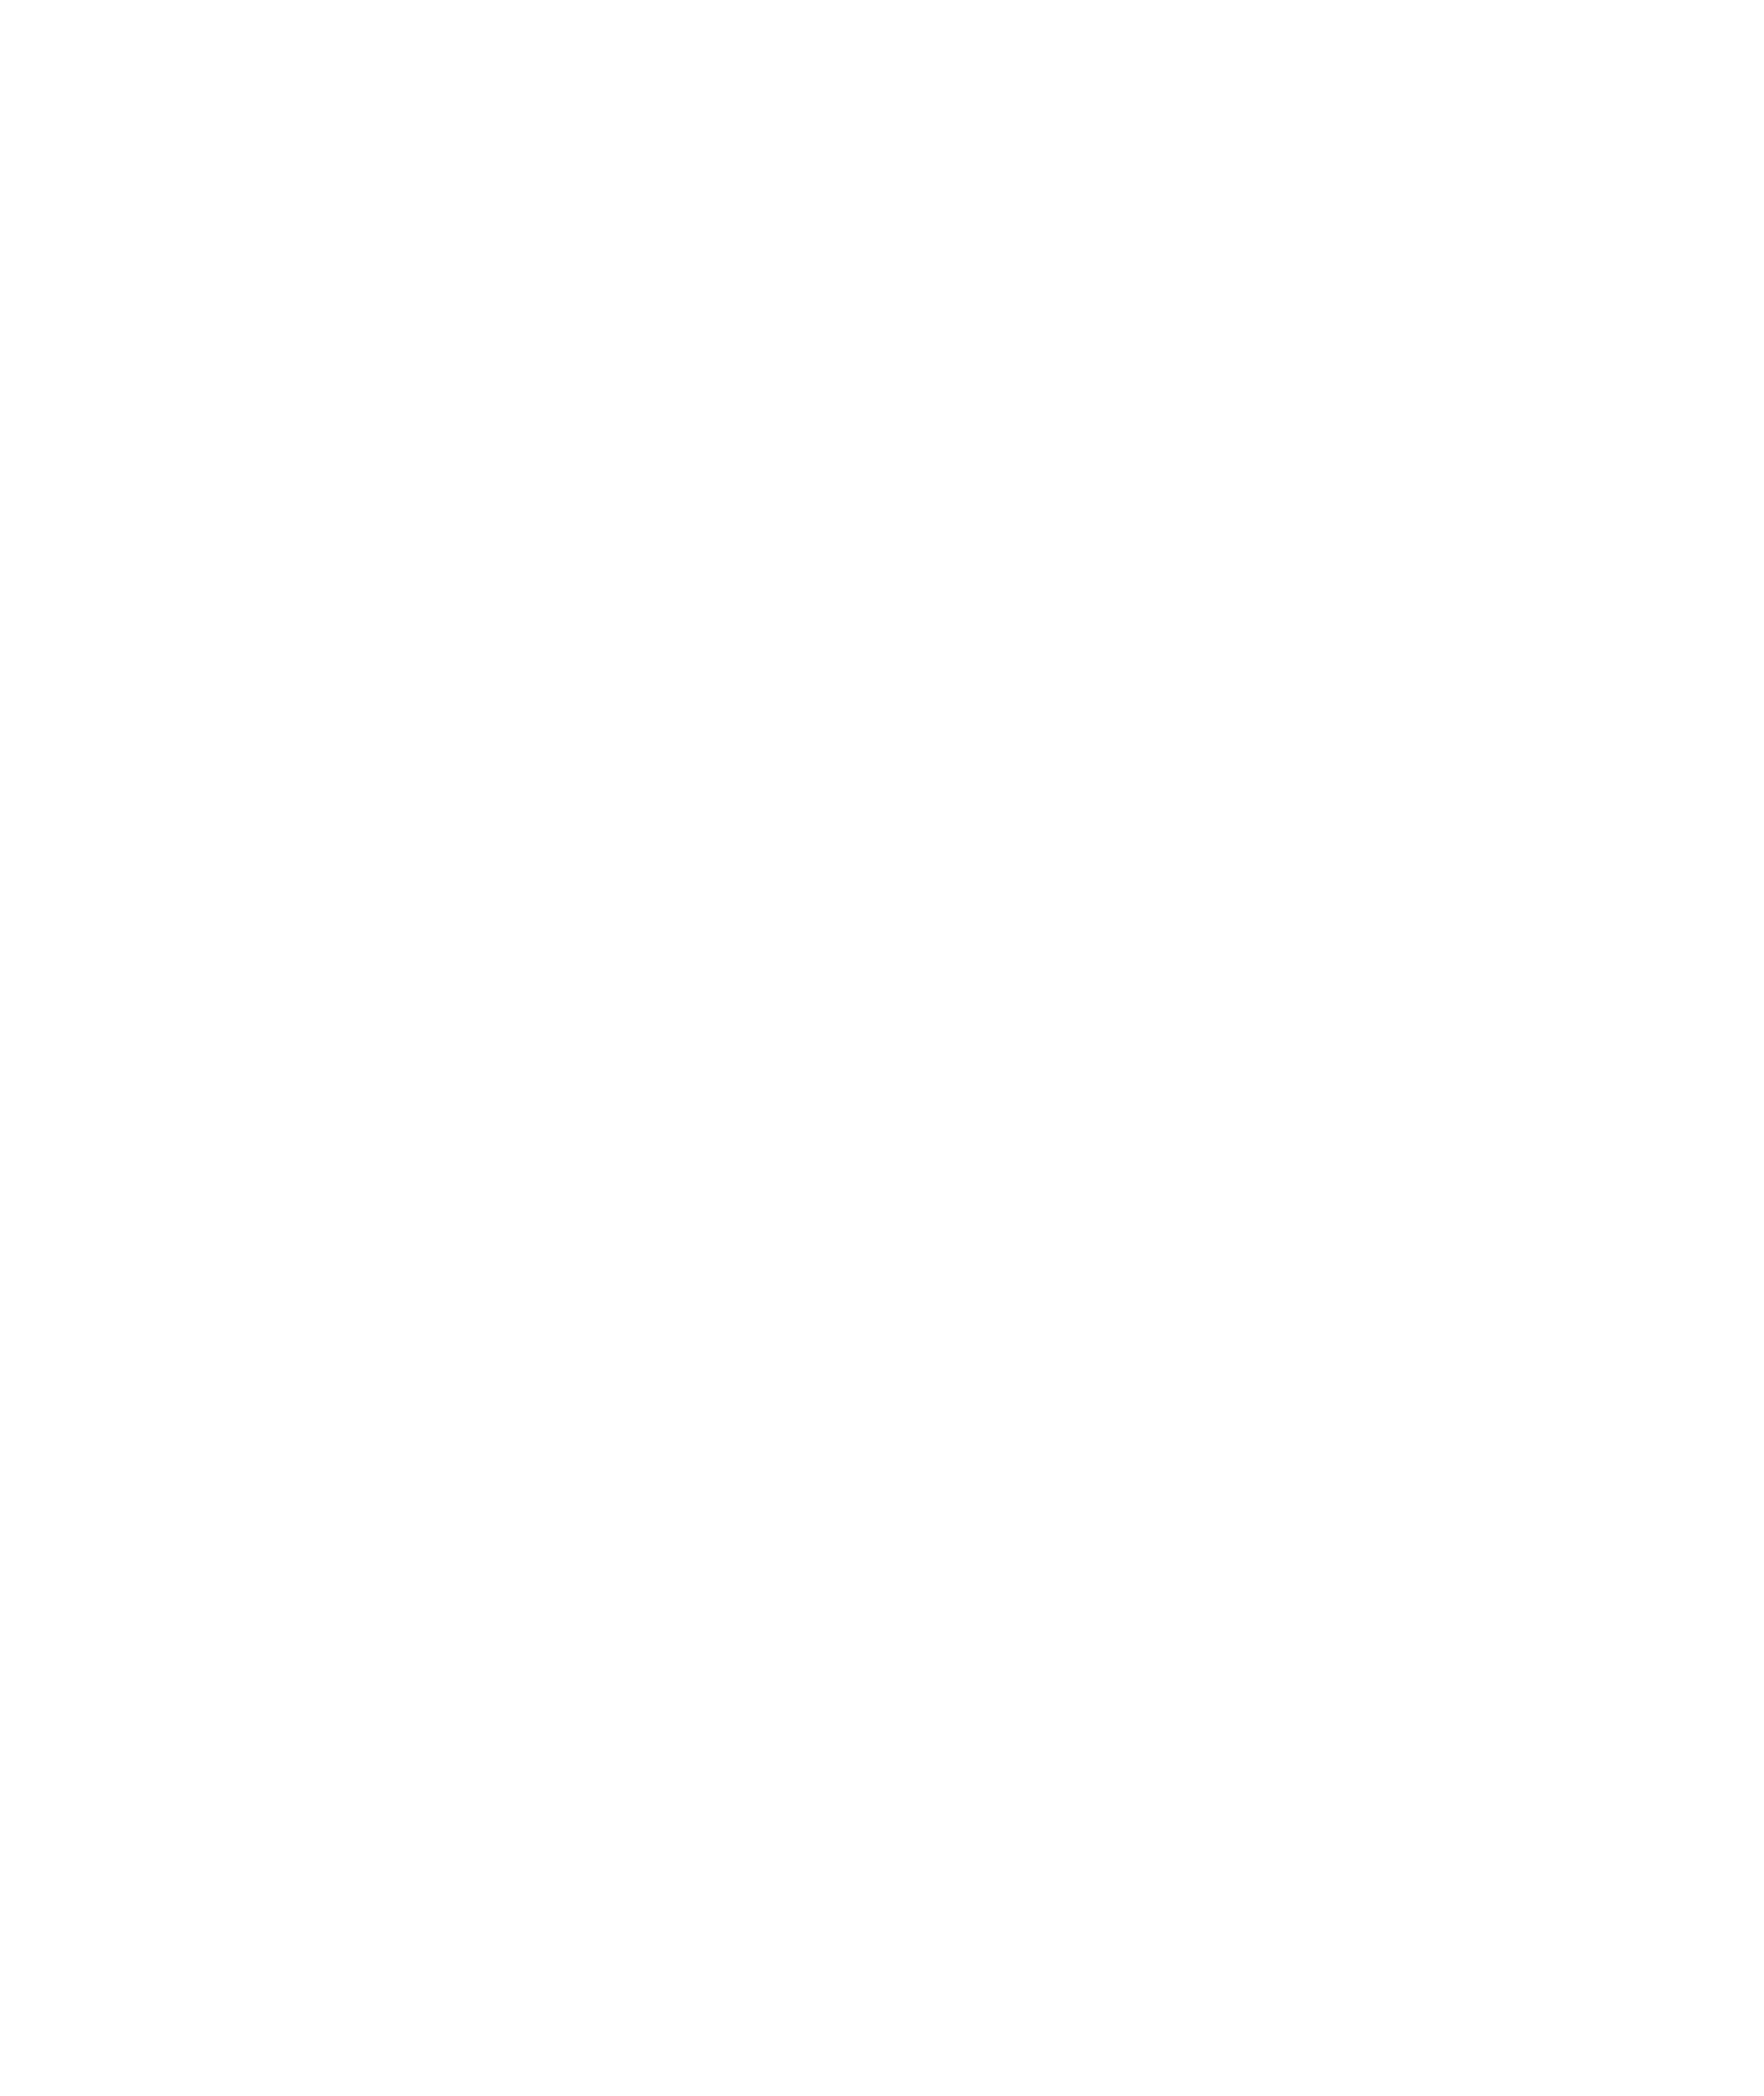 NB-logo-white - Copy.jpeg.png